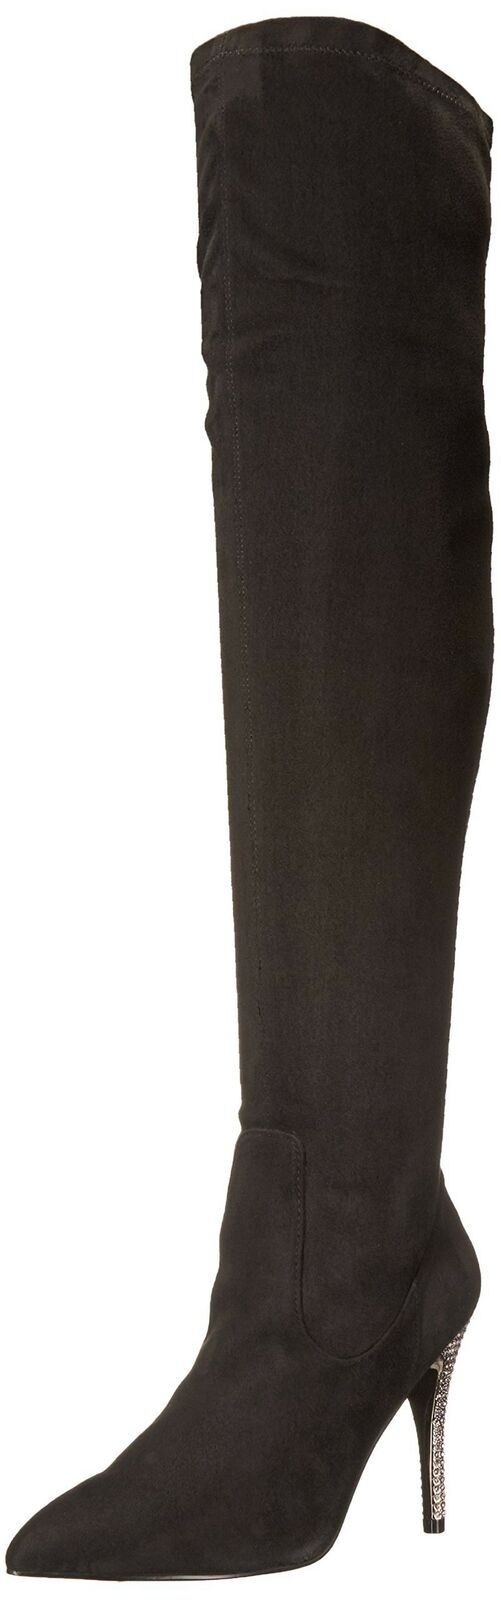 Nina Women's Rocklin-Fy Slouch Boot, Noir Stret Glam SD/Stone, 8 M US